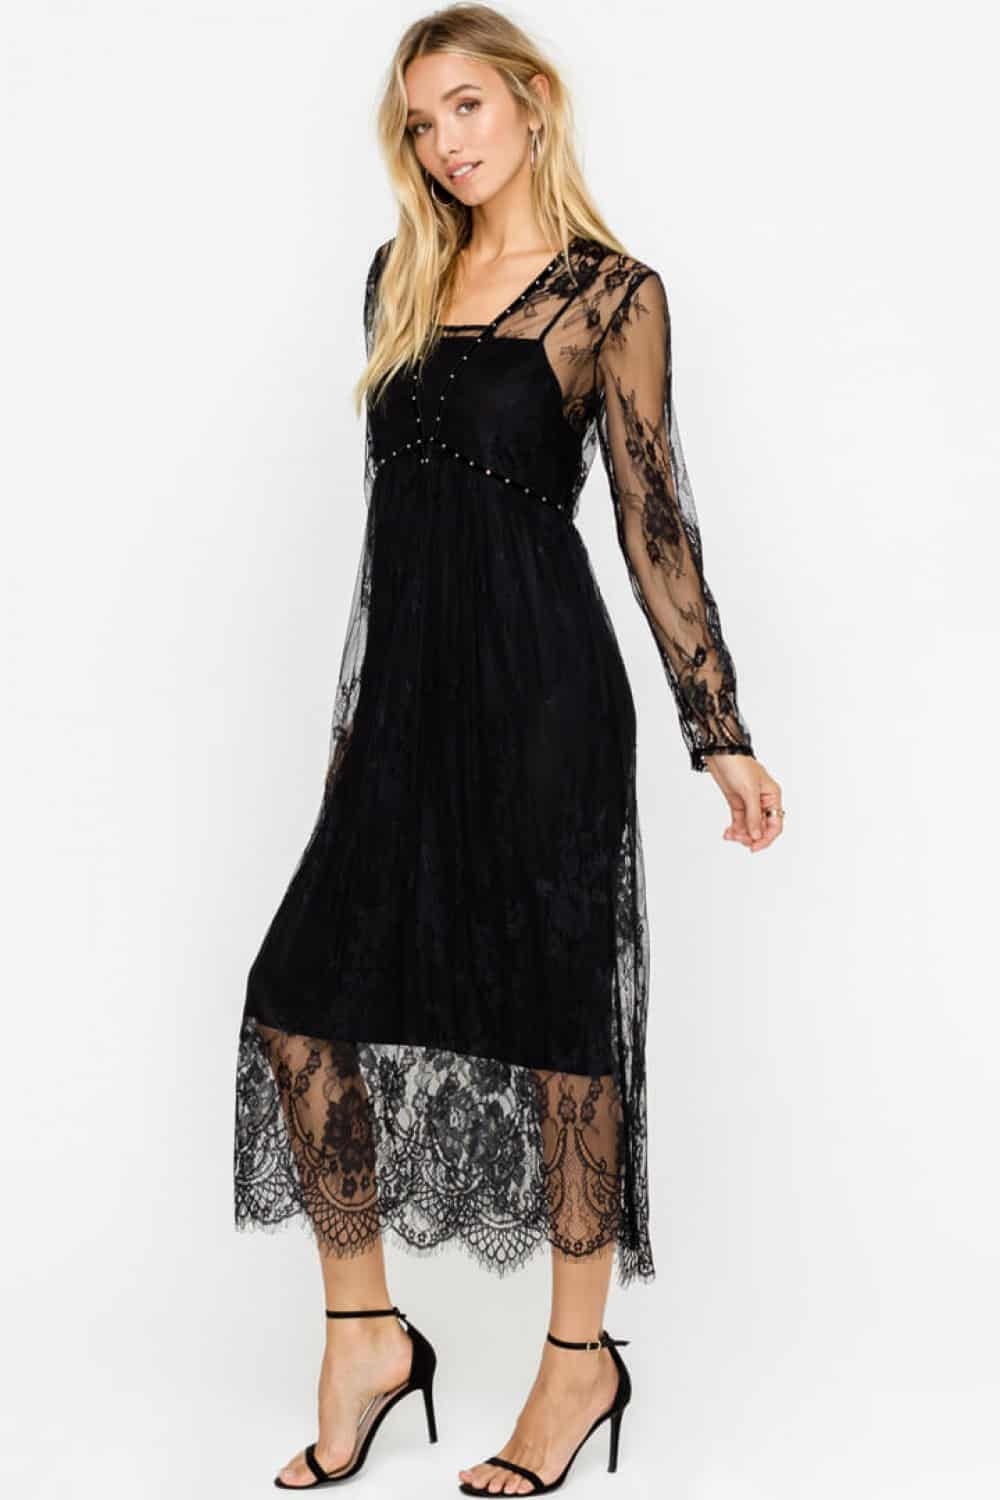 Black cocktail wear with lace detail